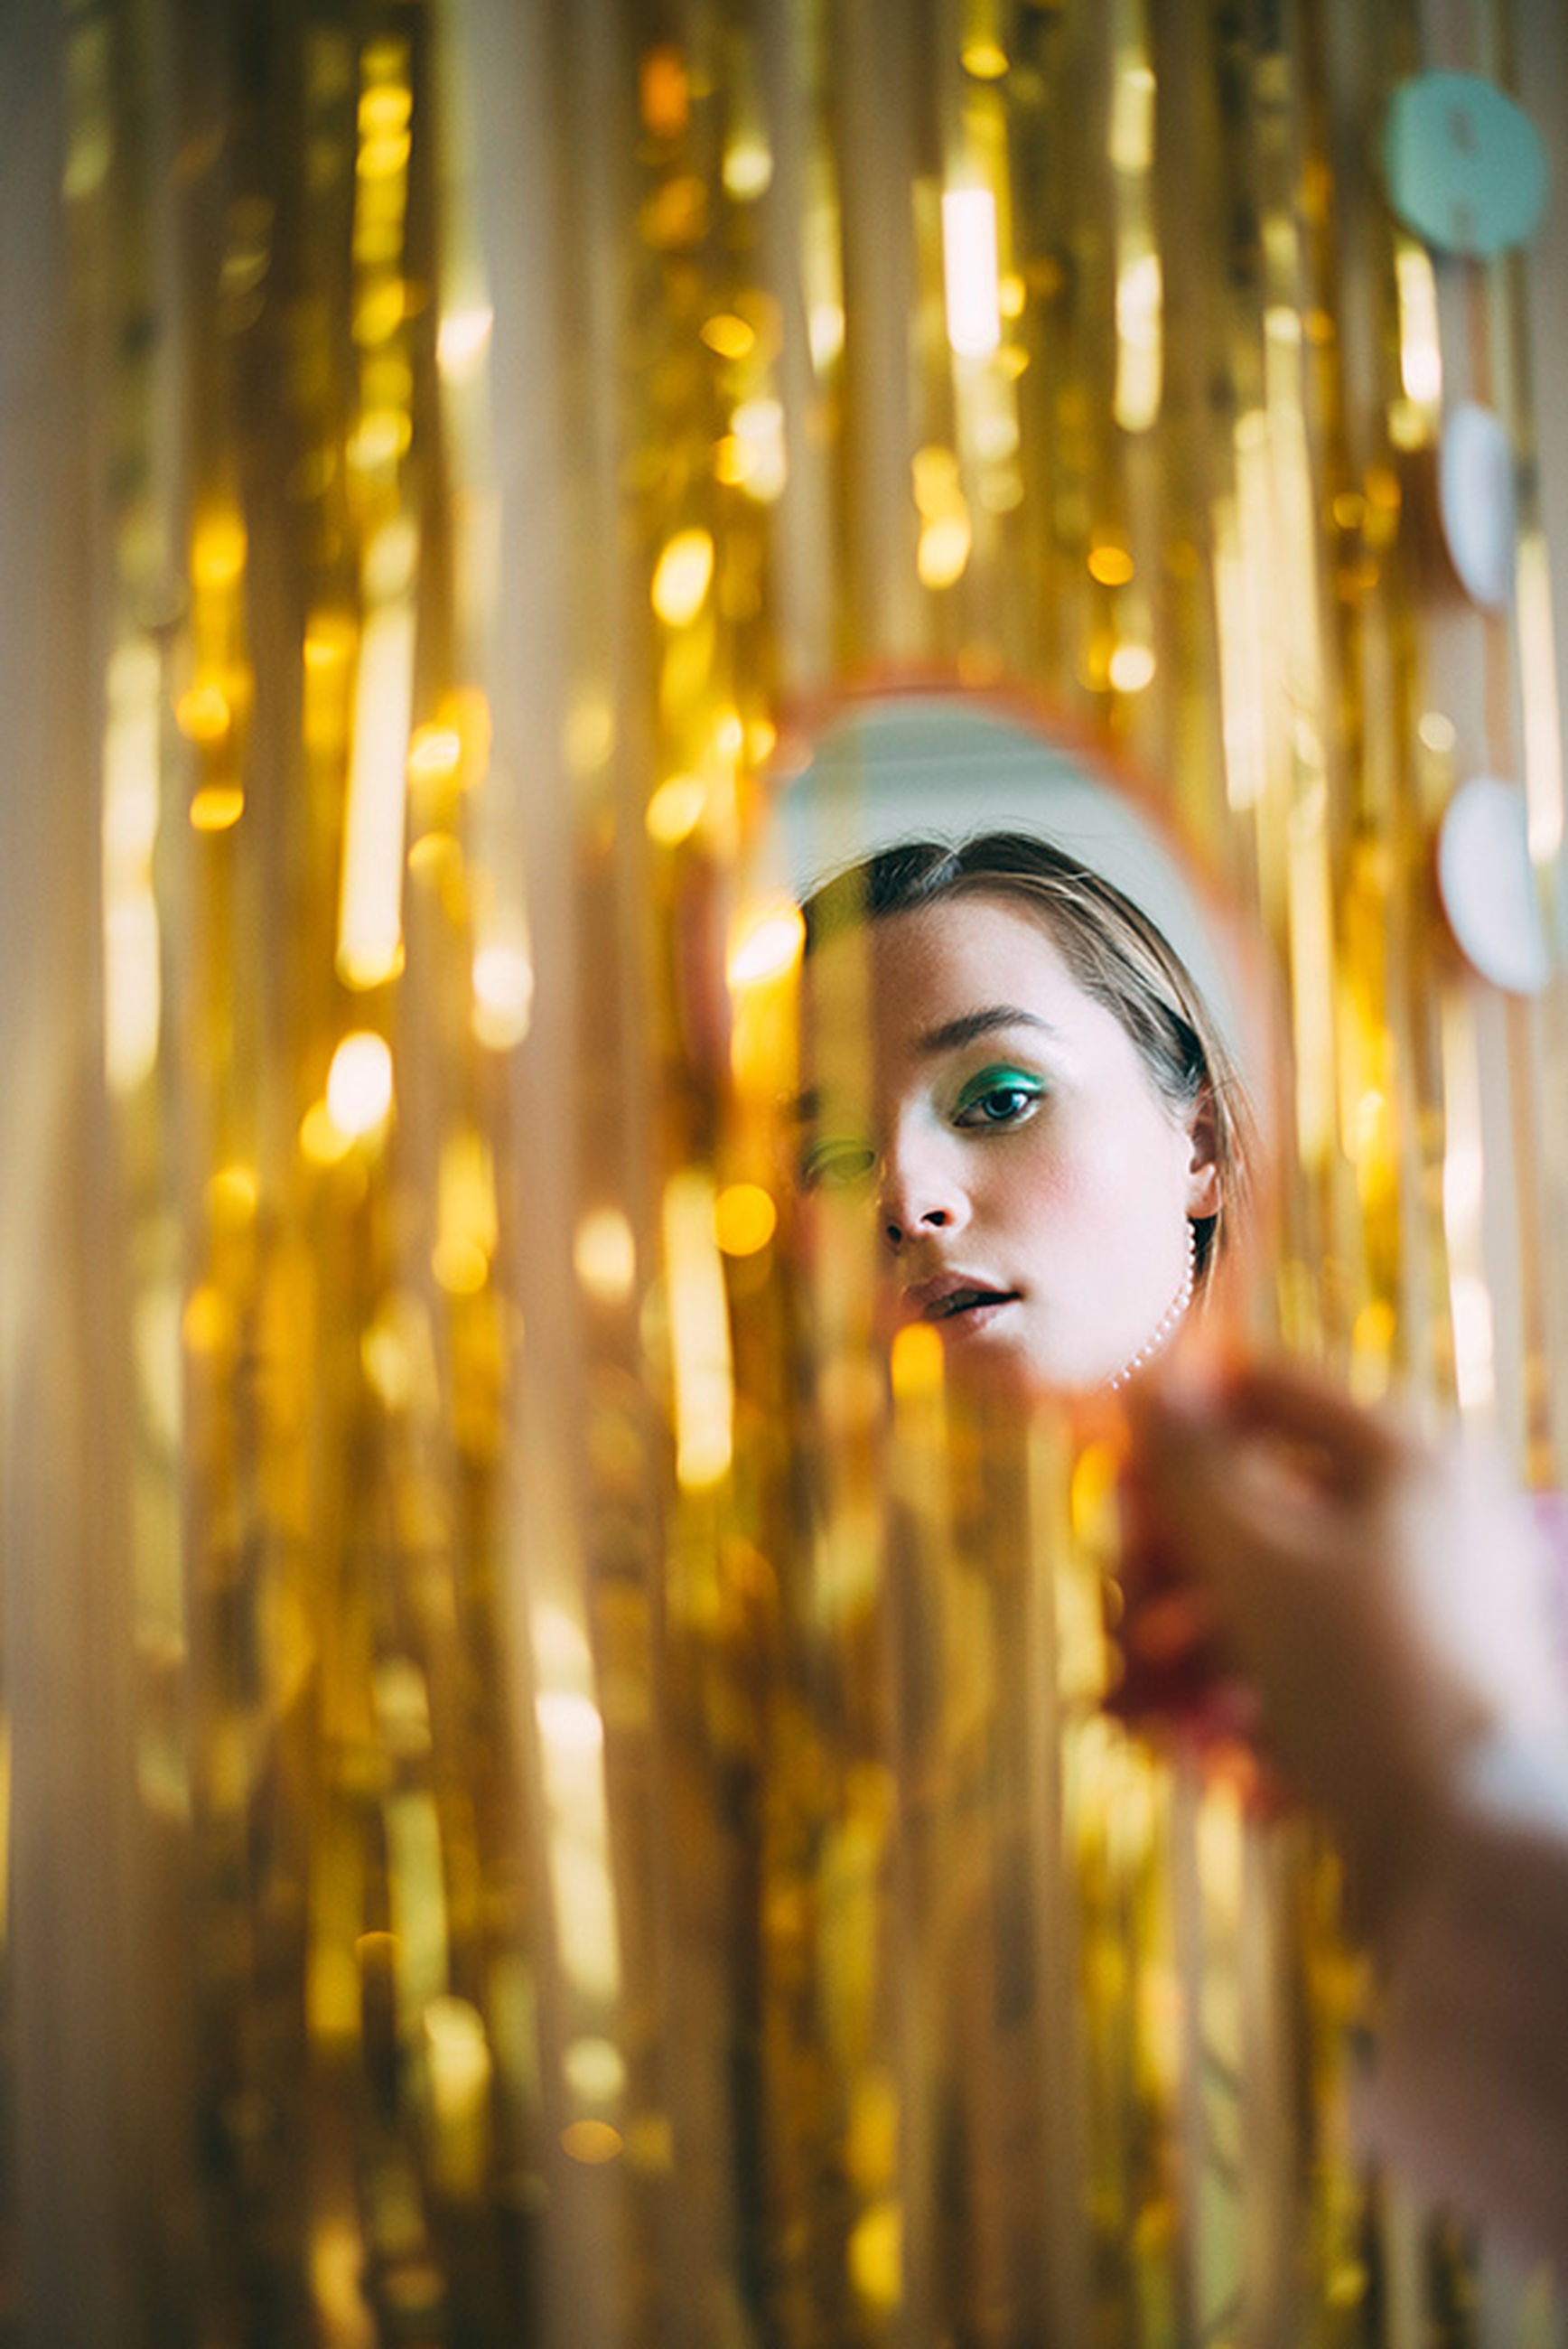 futuristic, gold colored, one person, beauty, gold, beautiful people, close-up, portrait, one woman only, illuminated, indoors, people, adults only, only women, real people, young adult, adult, cyberspace, scientist